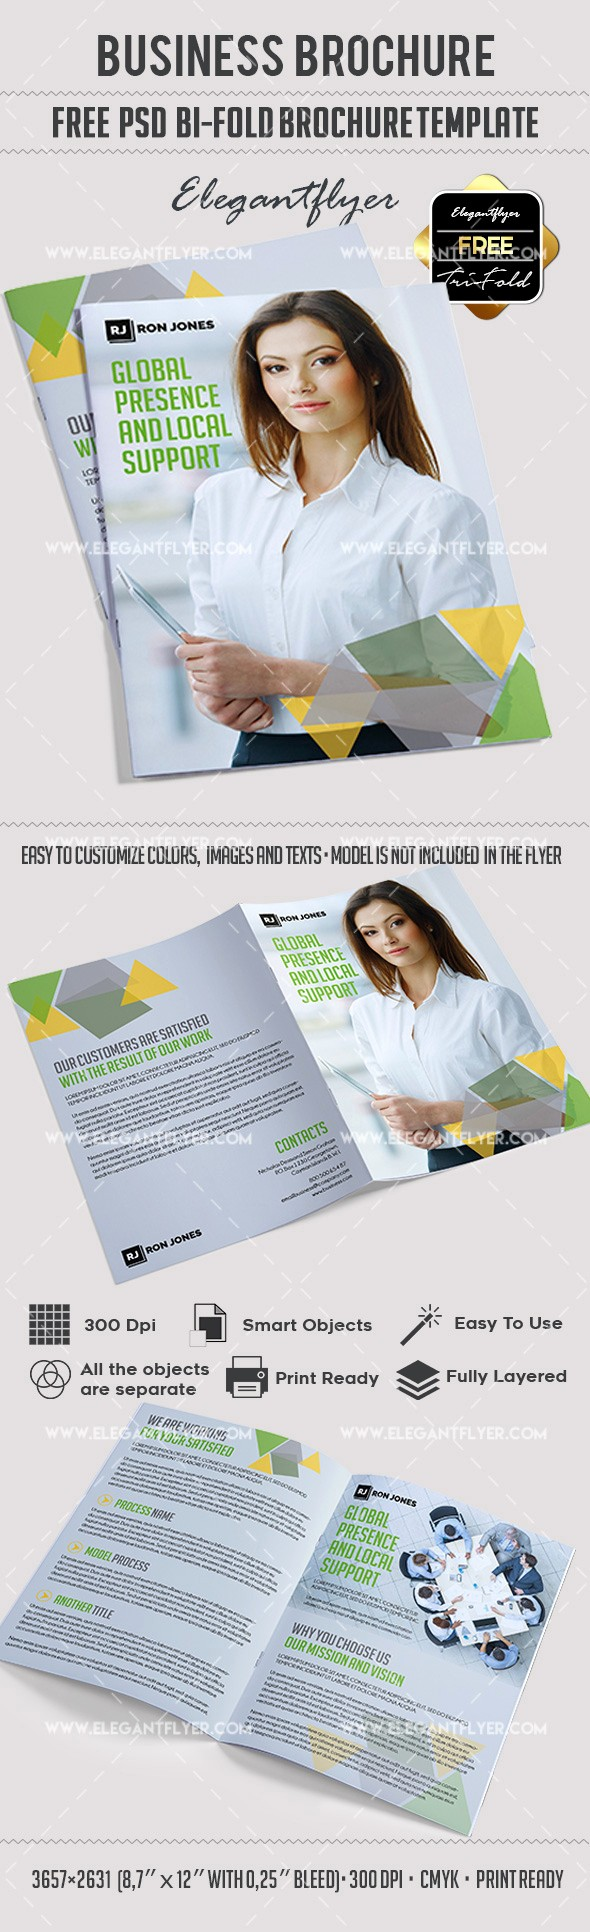 Bi Fold Brochure Templates Free Fresh Business – Free Bi Fold Psd Brochure Template – by